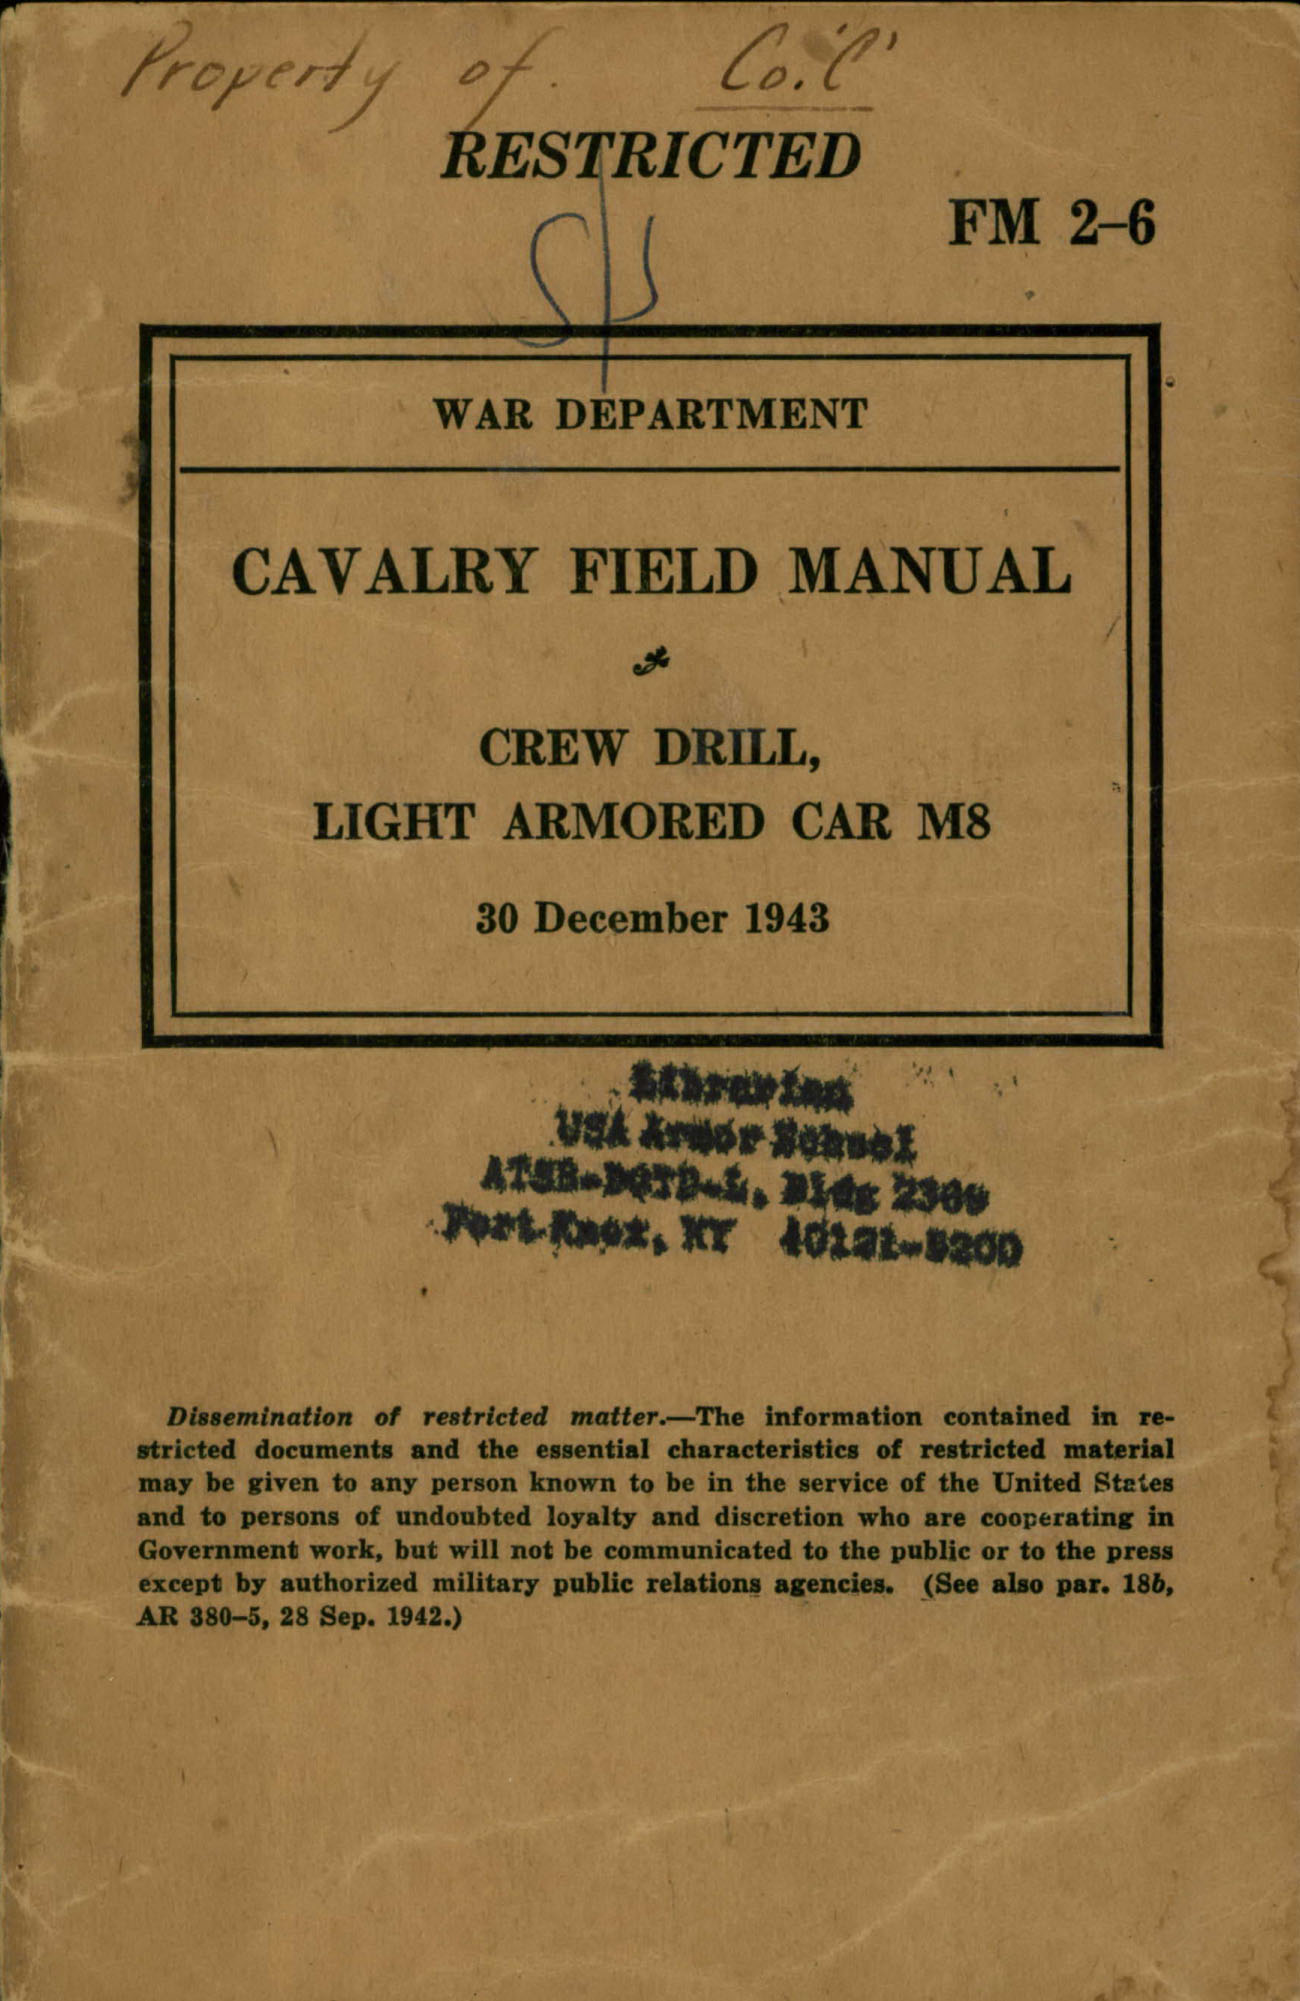 maneuver center of excellence libraries rh benning army mil Army Field Manual 3 21.5 Army Technical Manuals